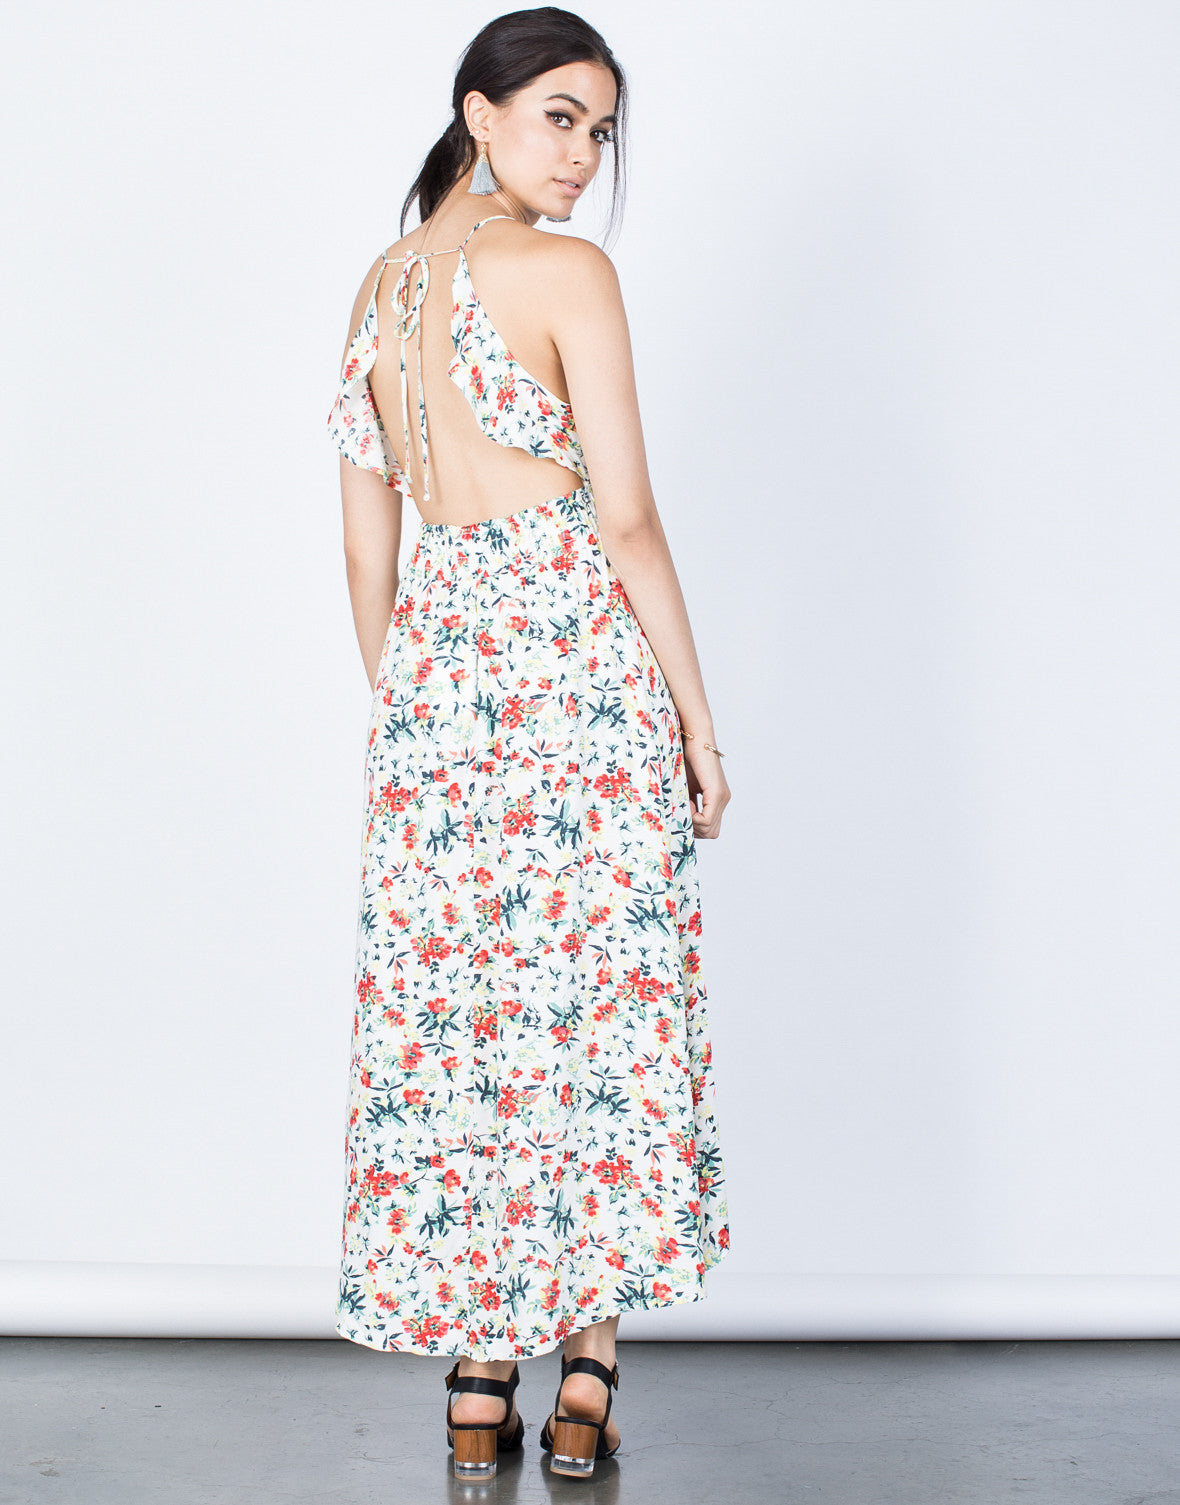 Back View of Hidden in Floral Dress